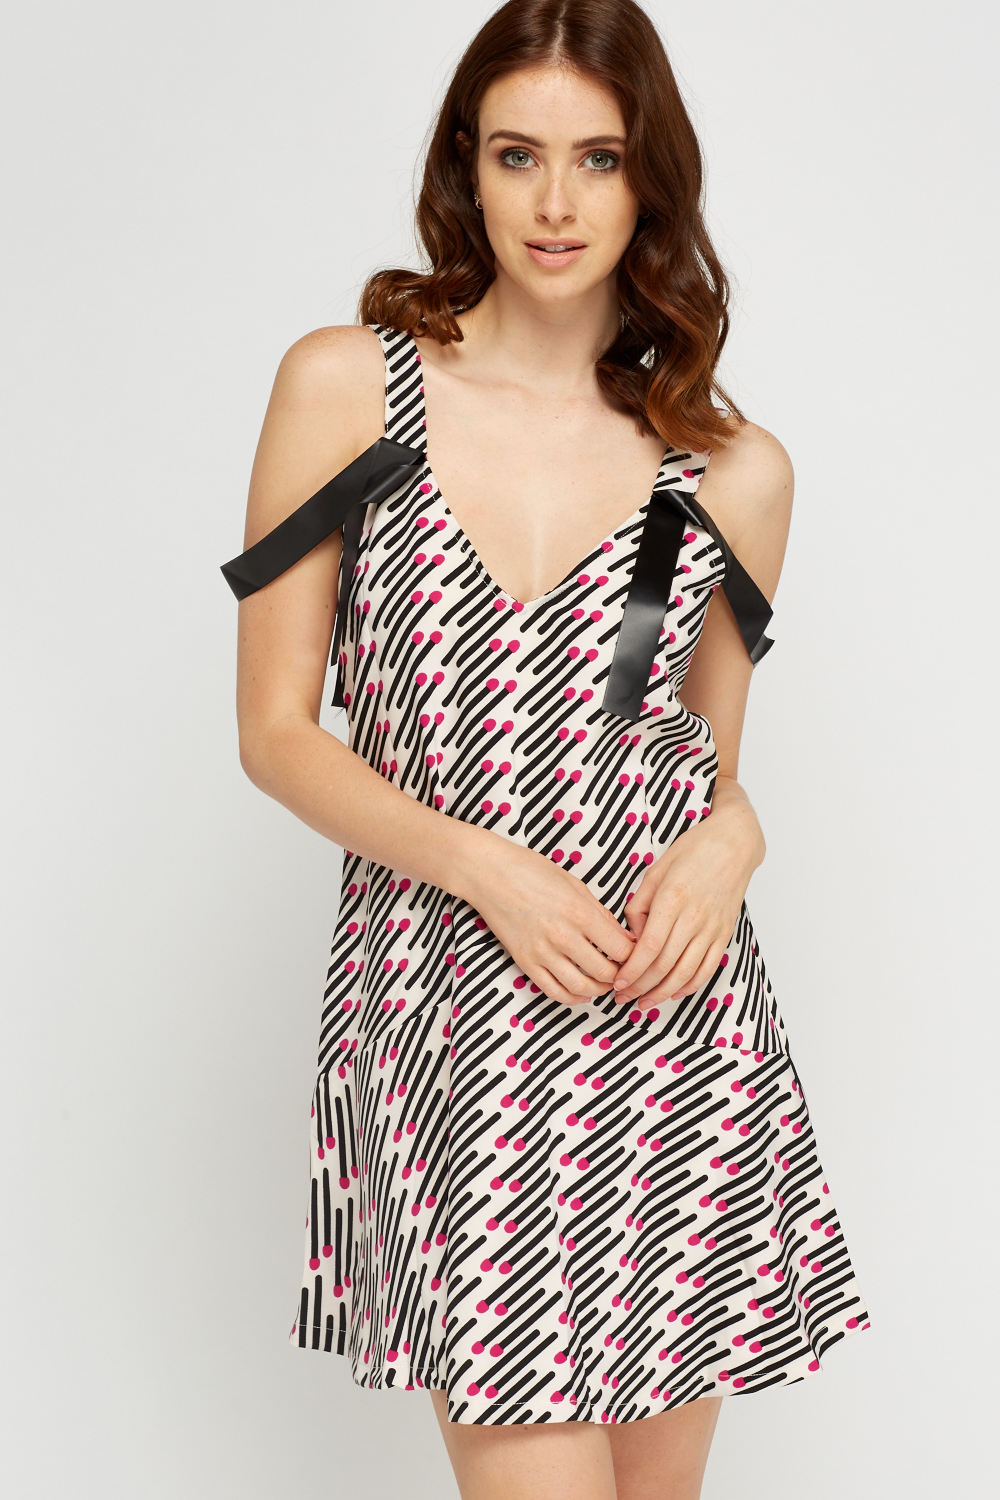 ca441ee2ebf Ribbon Shoulder Detail Printed Dress - Black Multi or Off White Multi -  Just £5